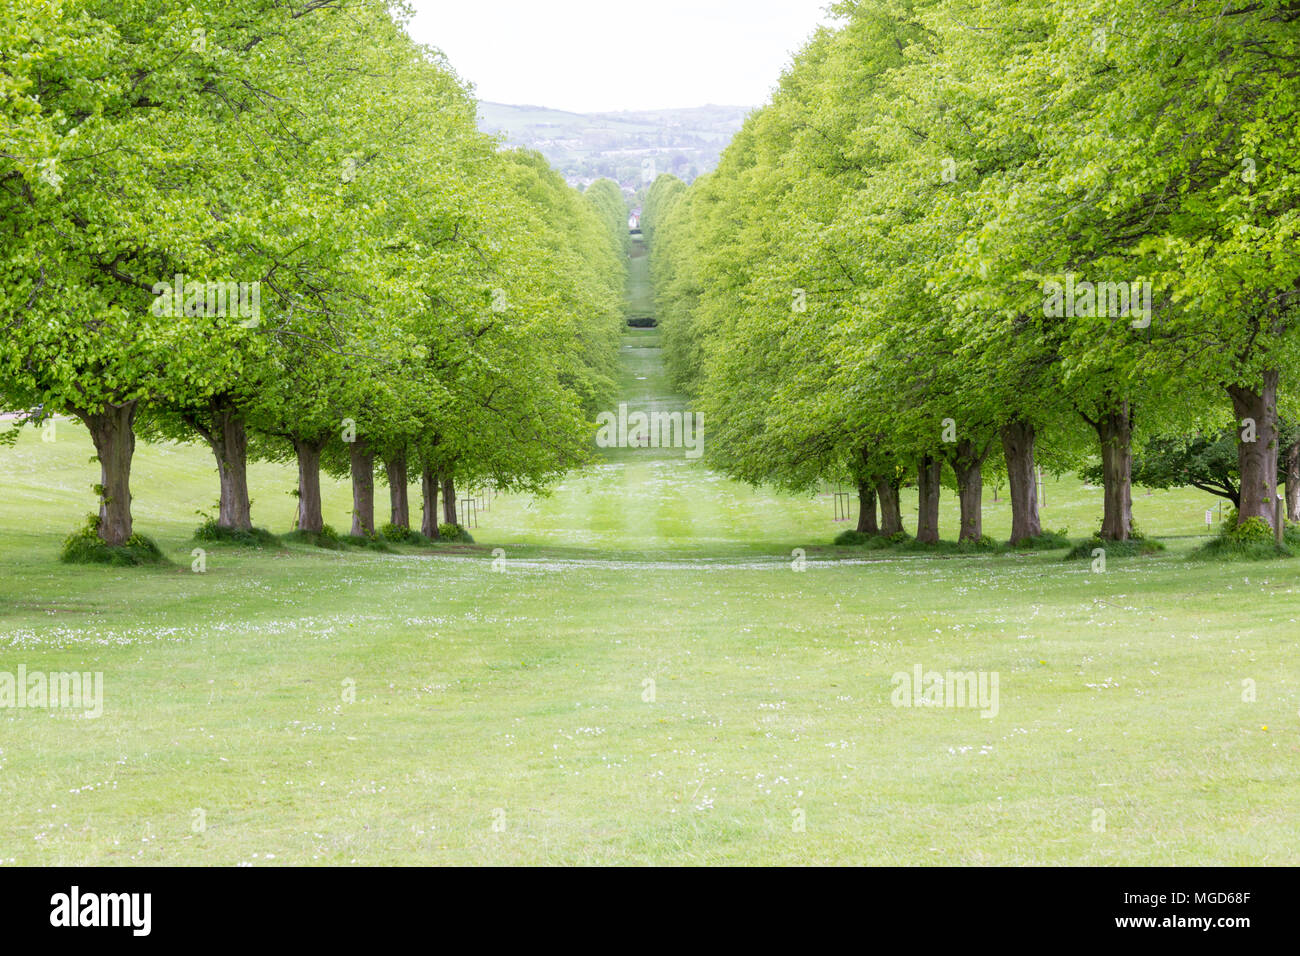 Belfast/N. Ireland - May 31, 2015: Trees line the Prince of Wales Avenue leading up to Parliament Buildings, also known as Stormont. - Stock Image